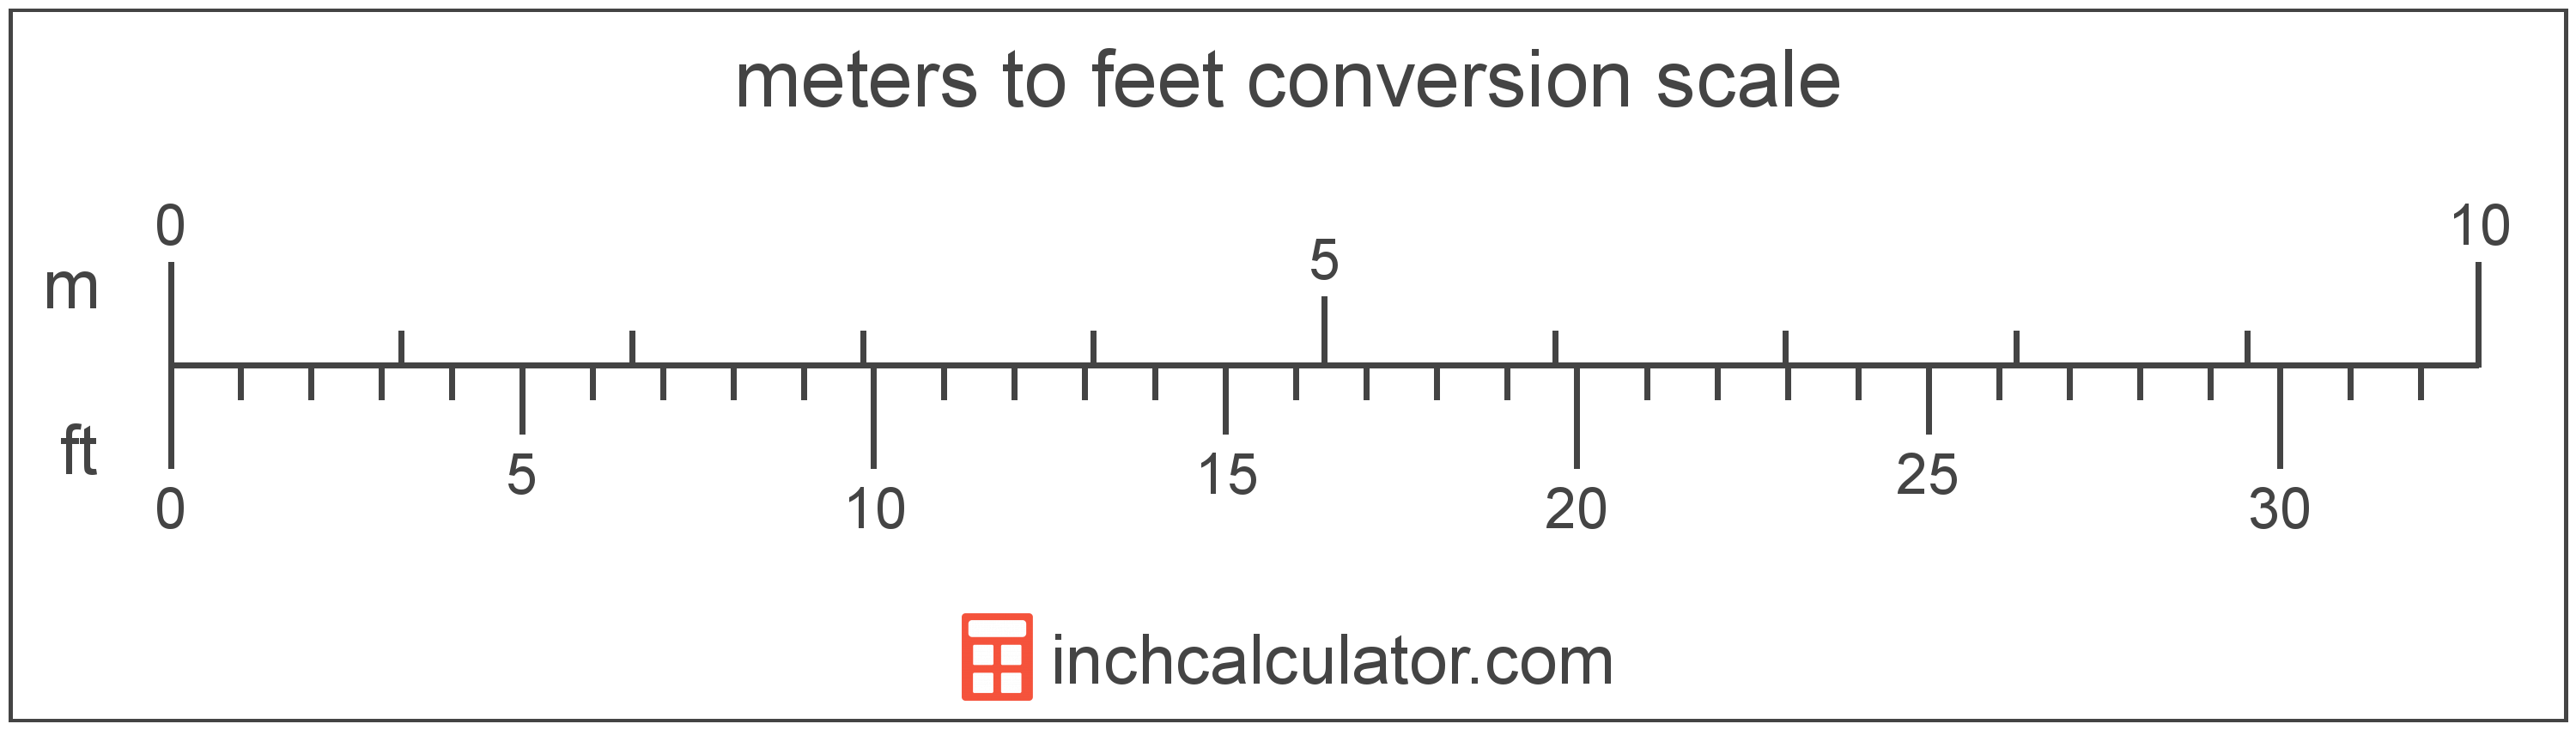 Meters To Feet Conversion M To Ft Inch Calculator Convert 51 inch to foot with formula, common lengths conversion, conversion tables and more. meters to feet conversion m to ft